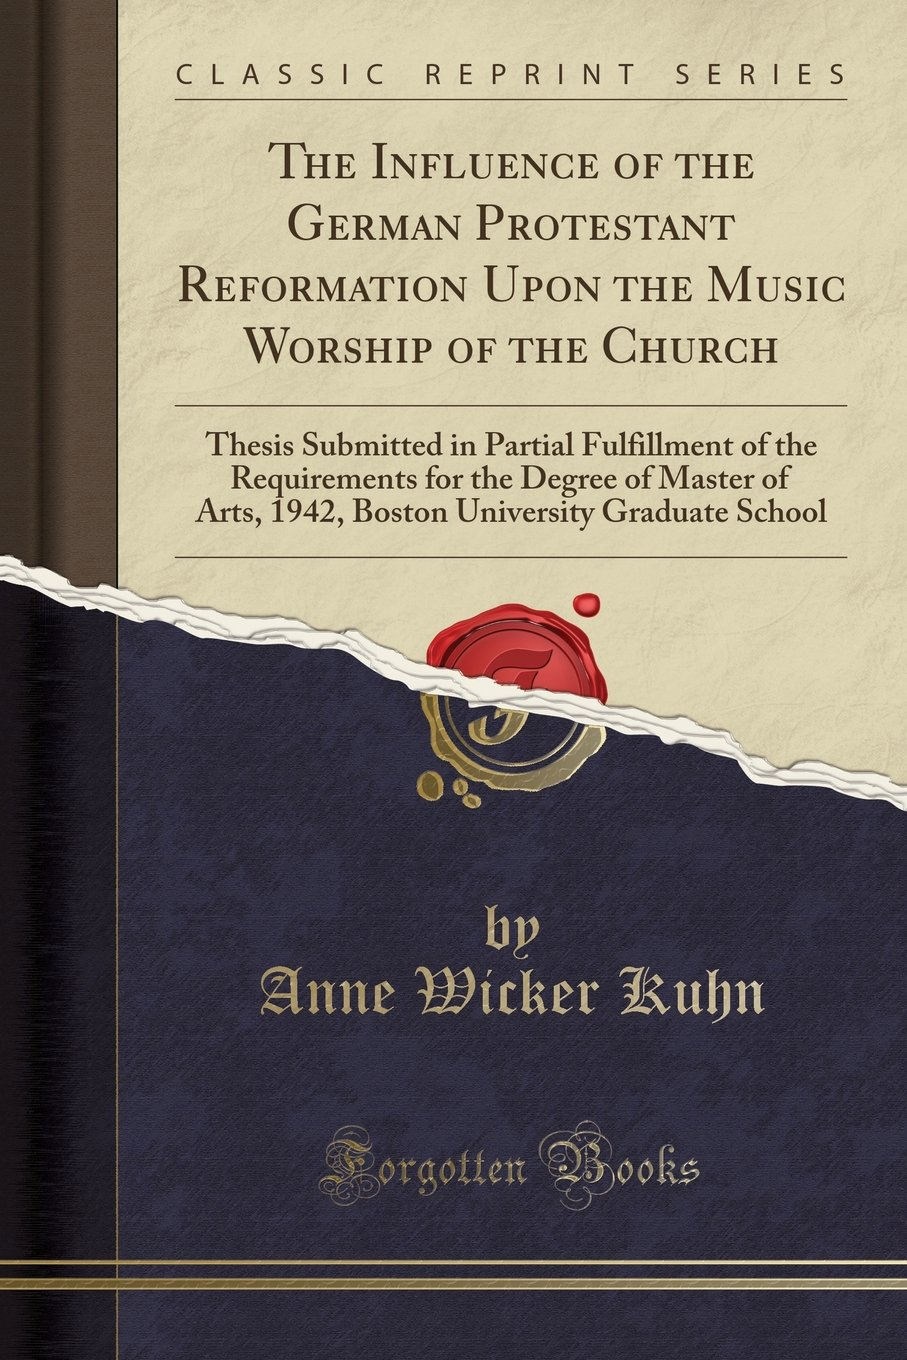 The Influence of the German Protestant Reformation Upon the Music Worship of the Church: Thesis Submitted in Partial Fulfillment of the Requirements ... University Graduate School (Classic Reprint) pdf epub